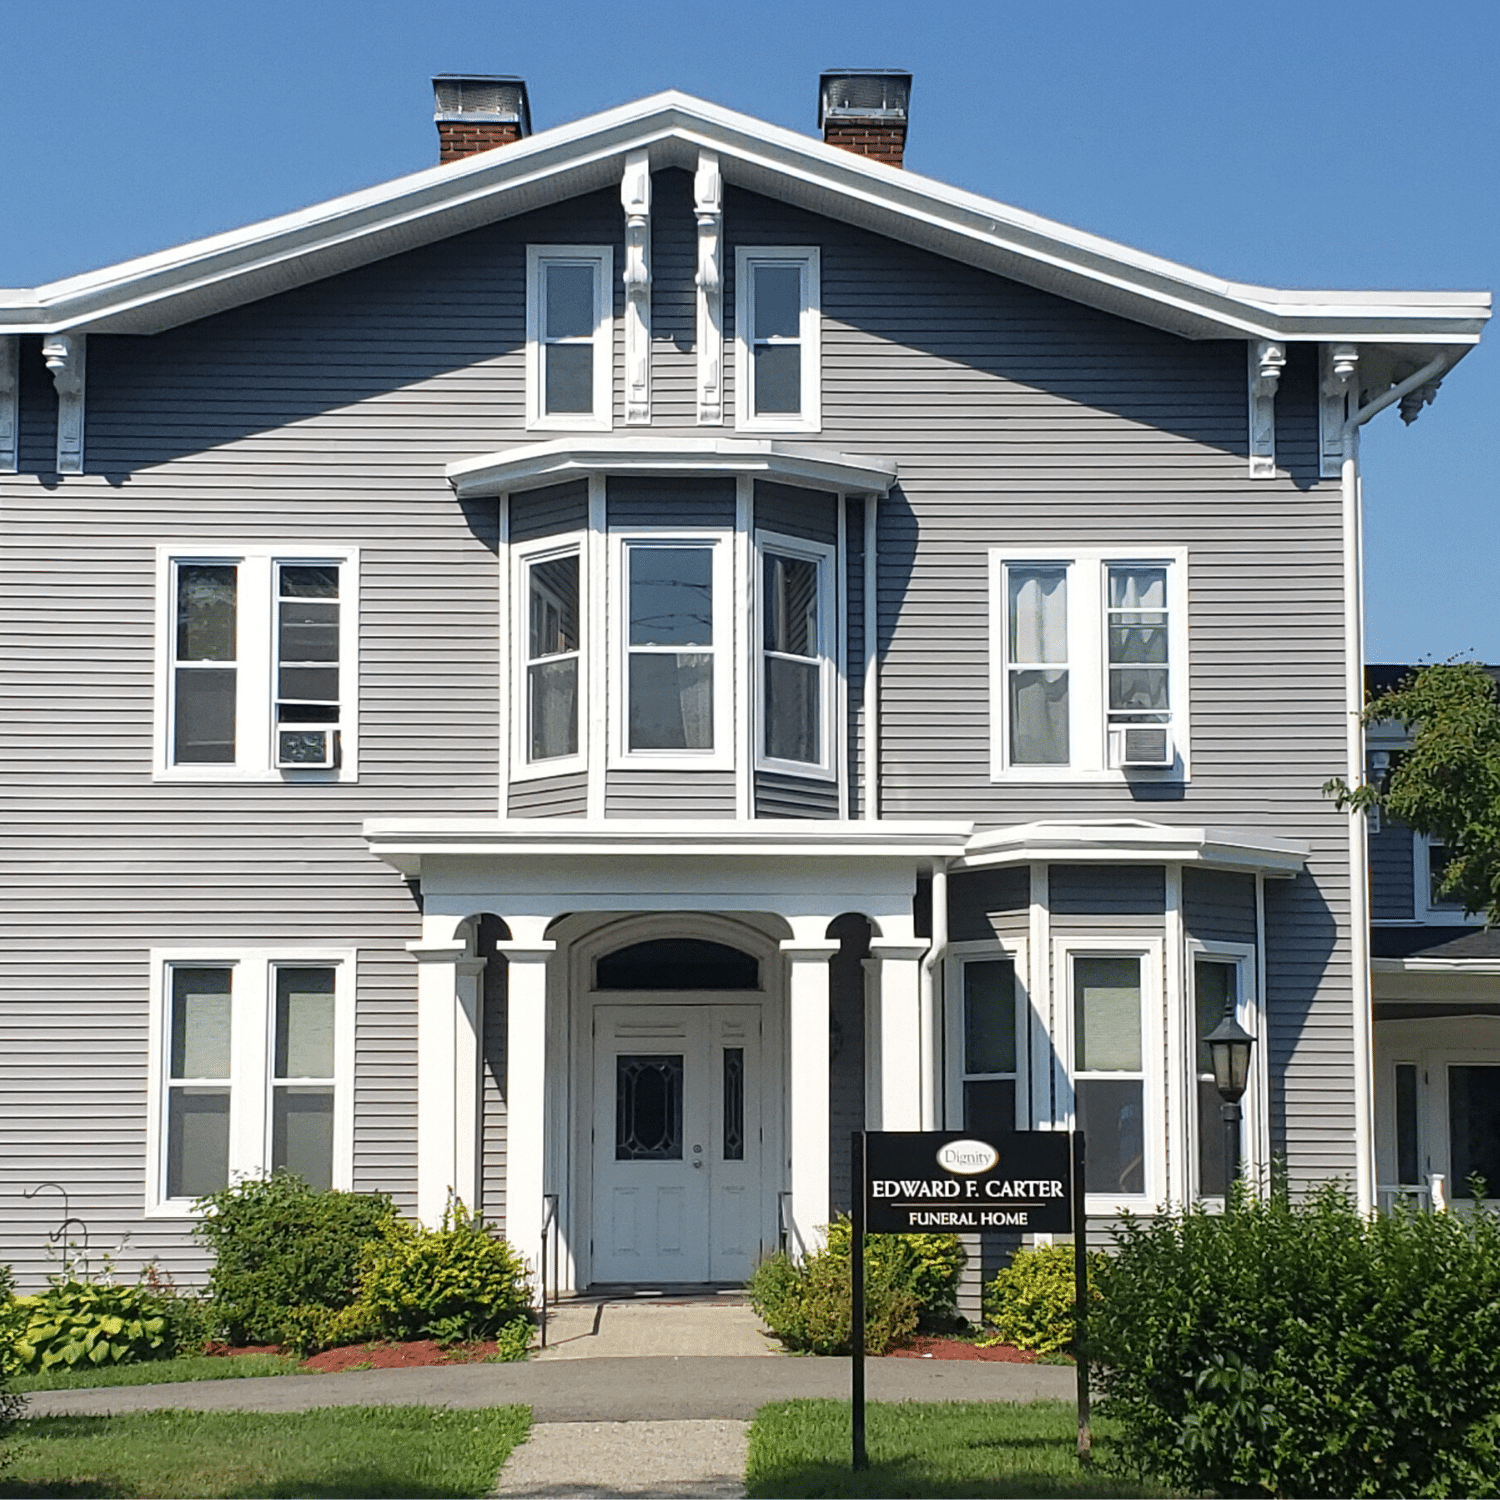 Edward F Carter Funeral home after we installed a new roof and siding replacement